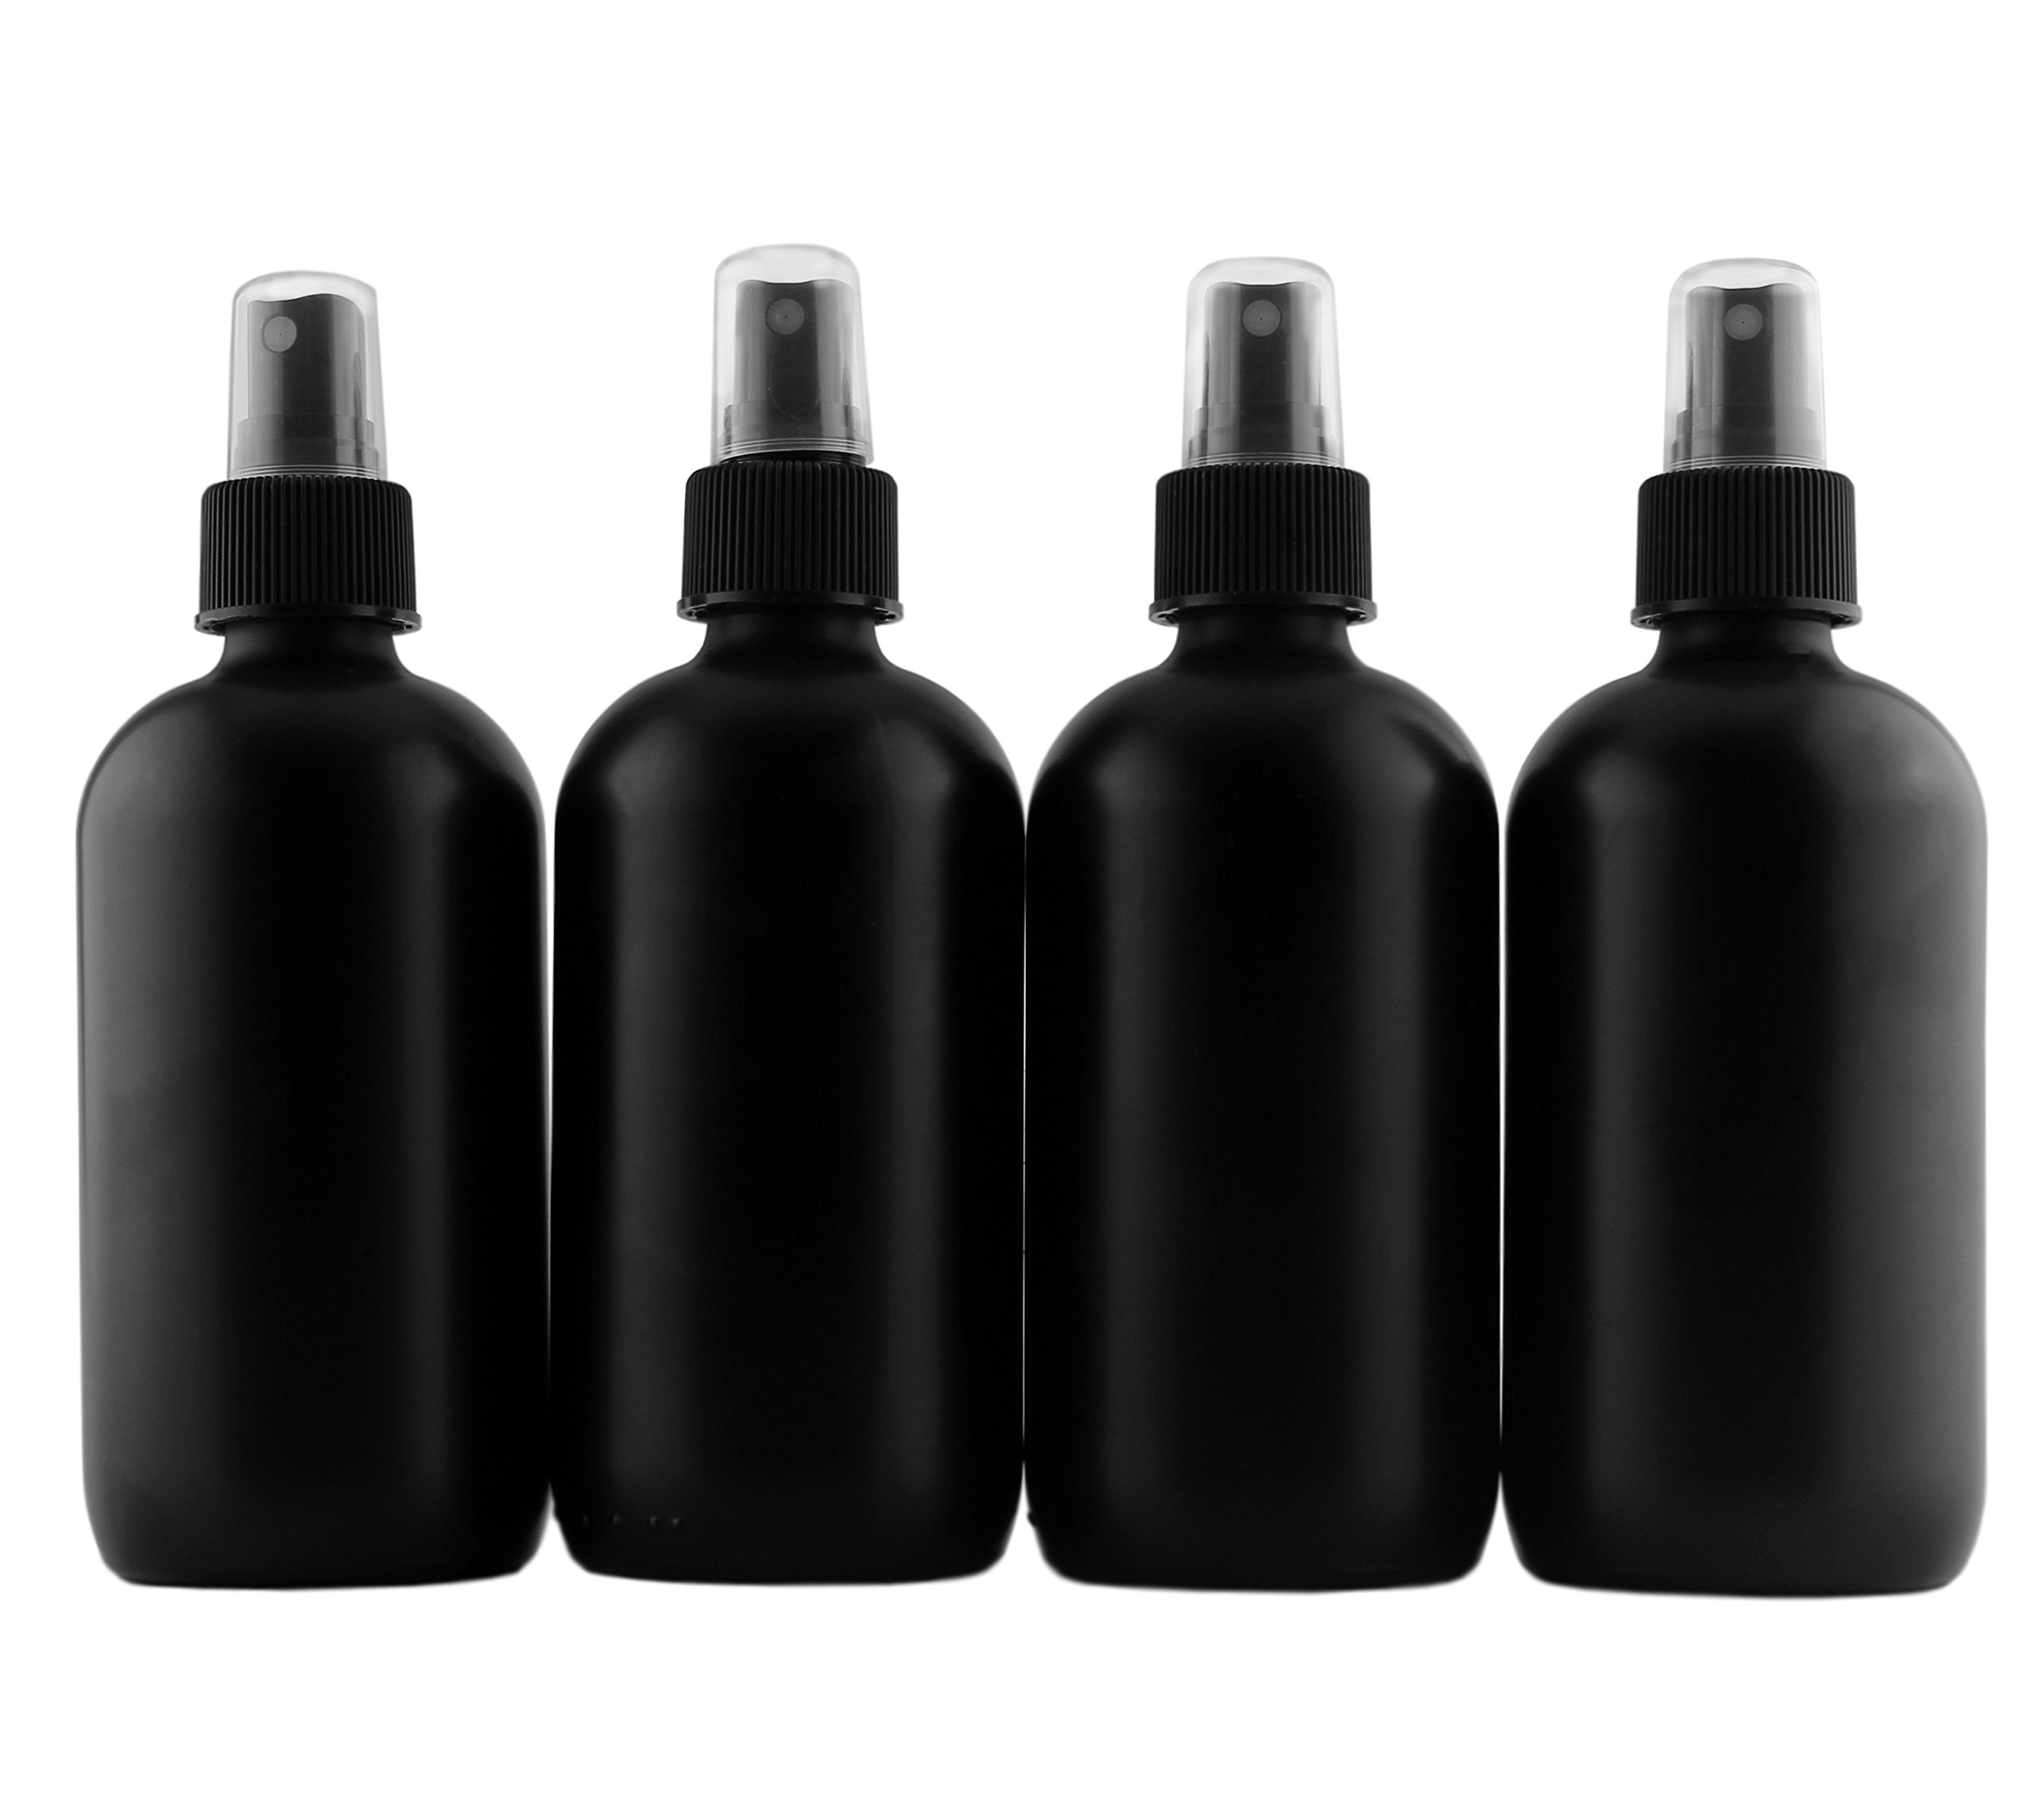 8-Ounce Black Glass Spray Bottles or Perfume Bottles (4-Pack); w/Fine Mist Atomizer Spritzers for Aromatherapy, Cologne, DIY & More